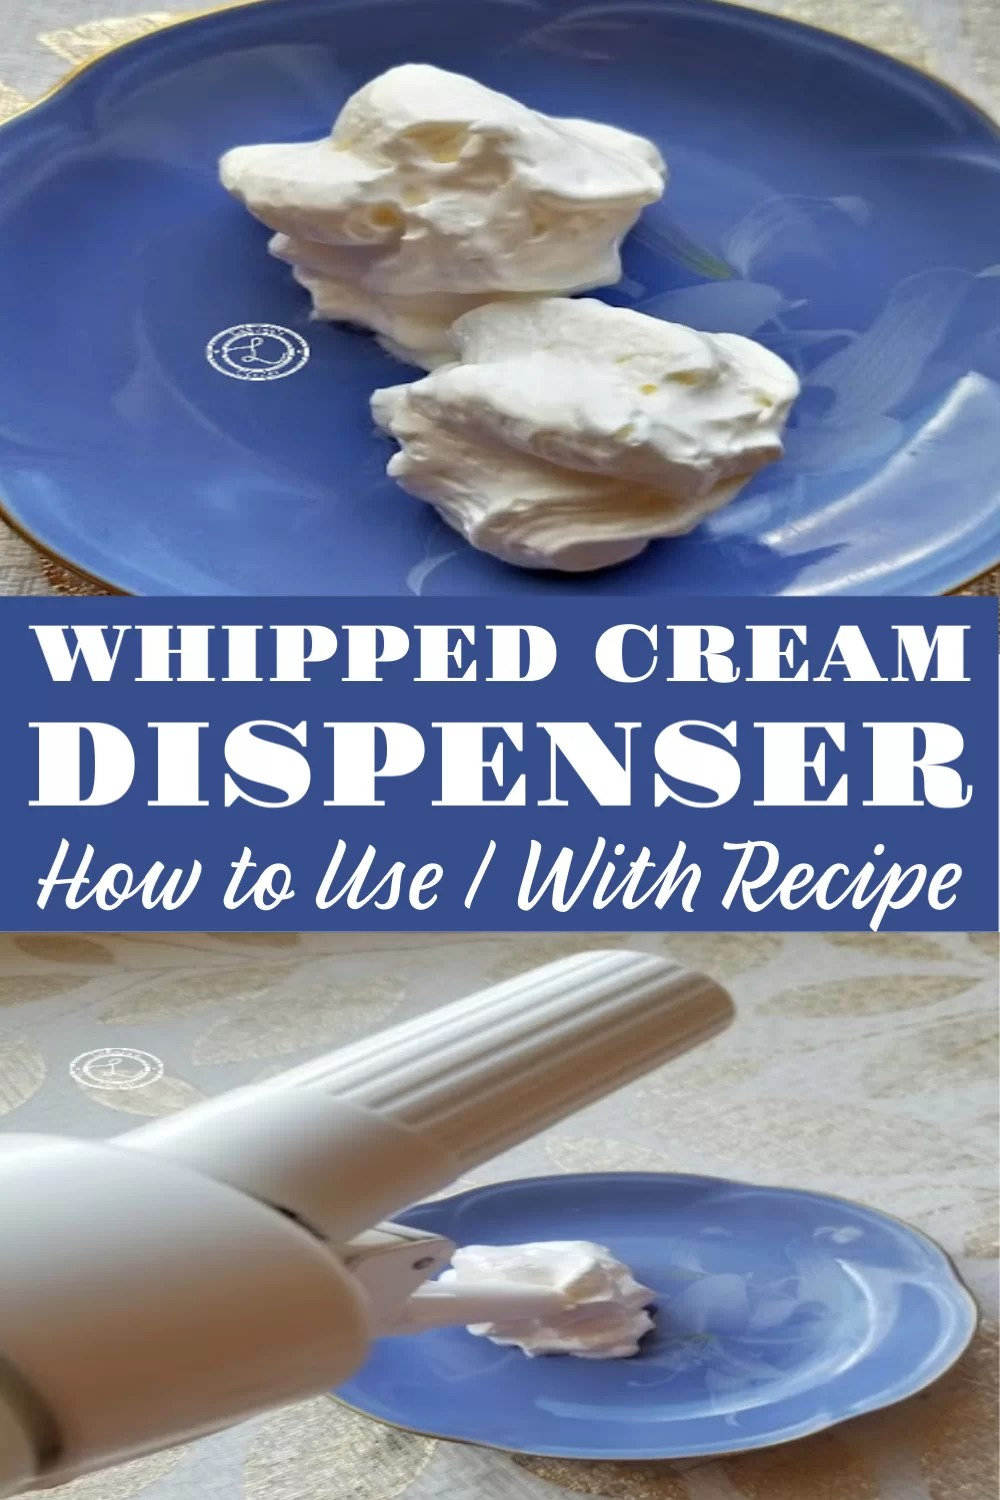 Whipped Cream Dispenser. Two pictures. one of whipped cream and one of the dispenser.